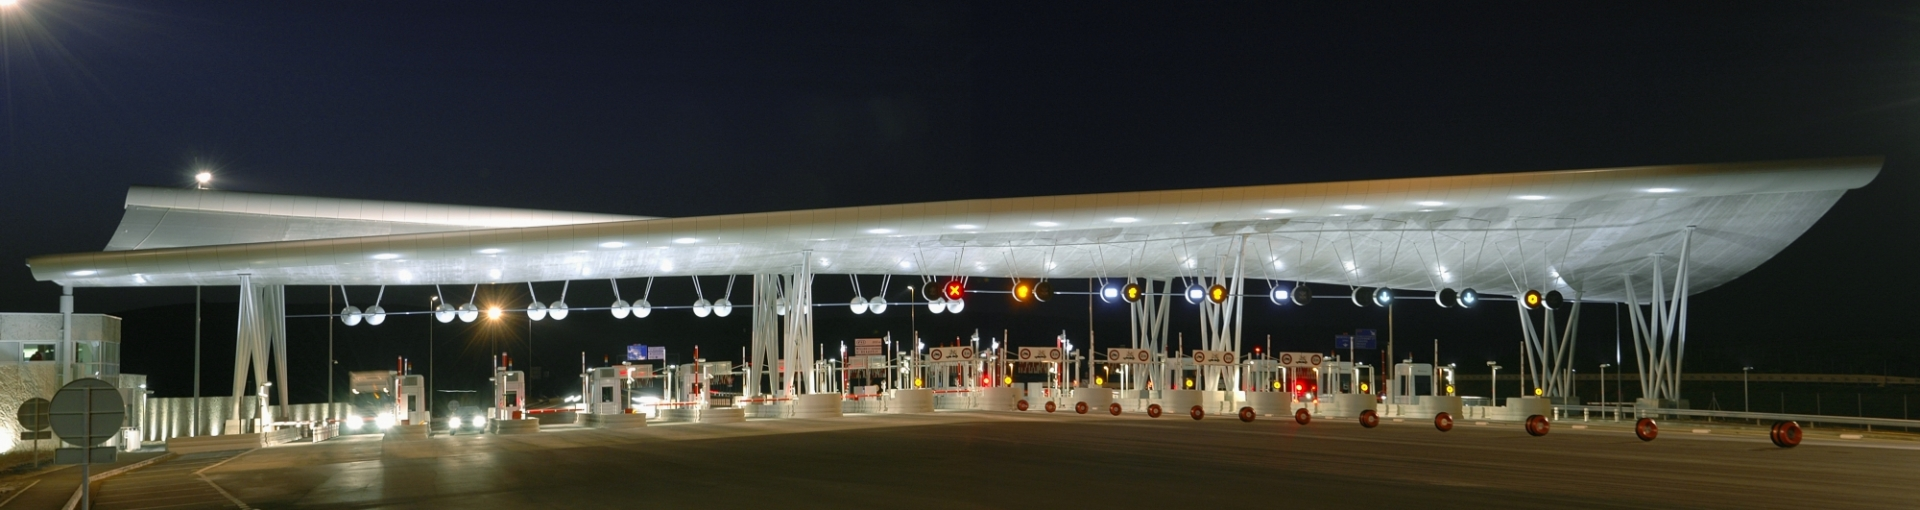 Toll gate by night